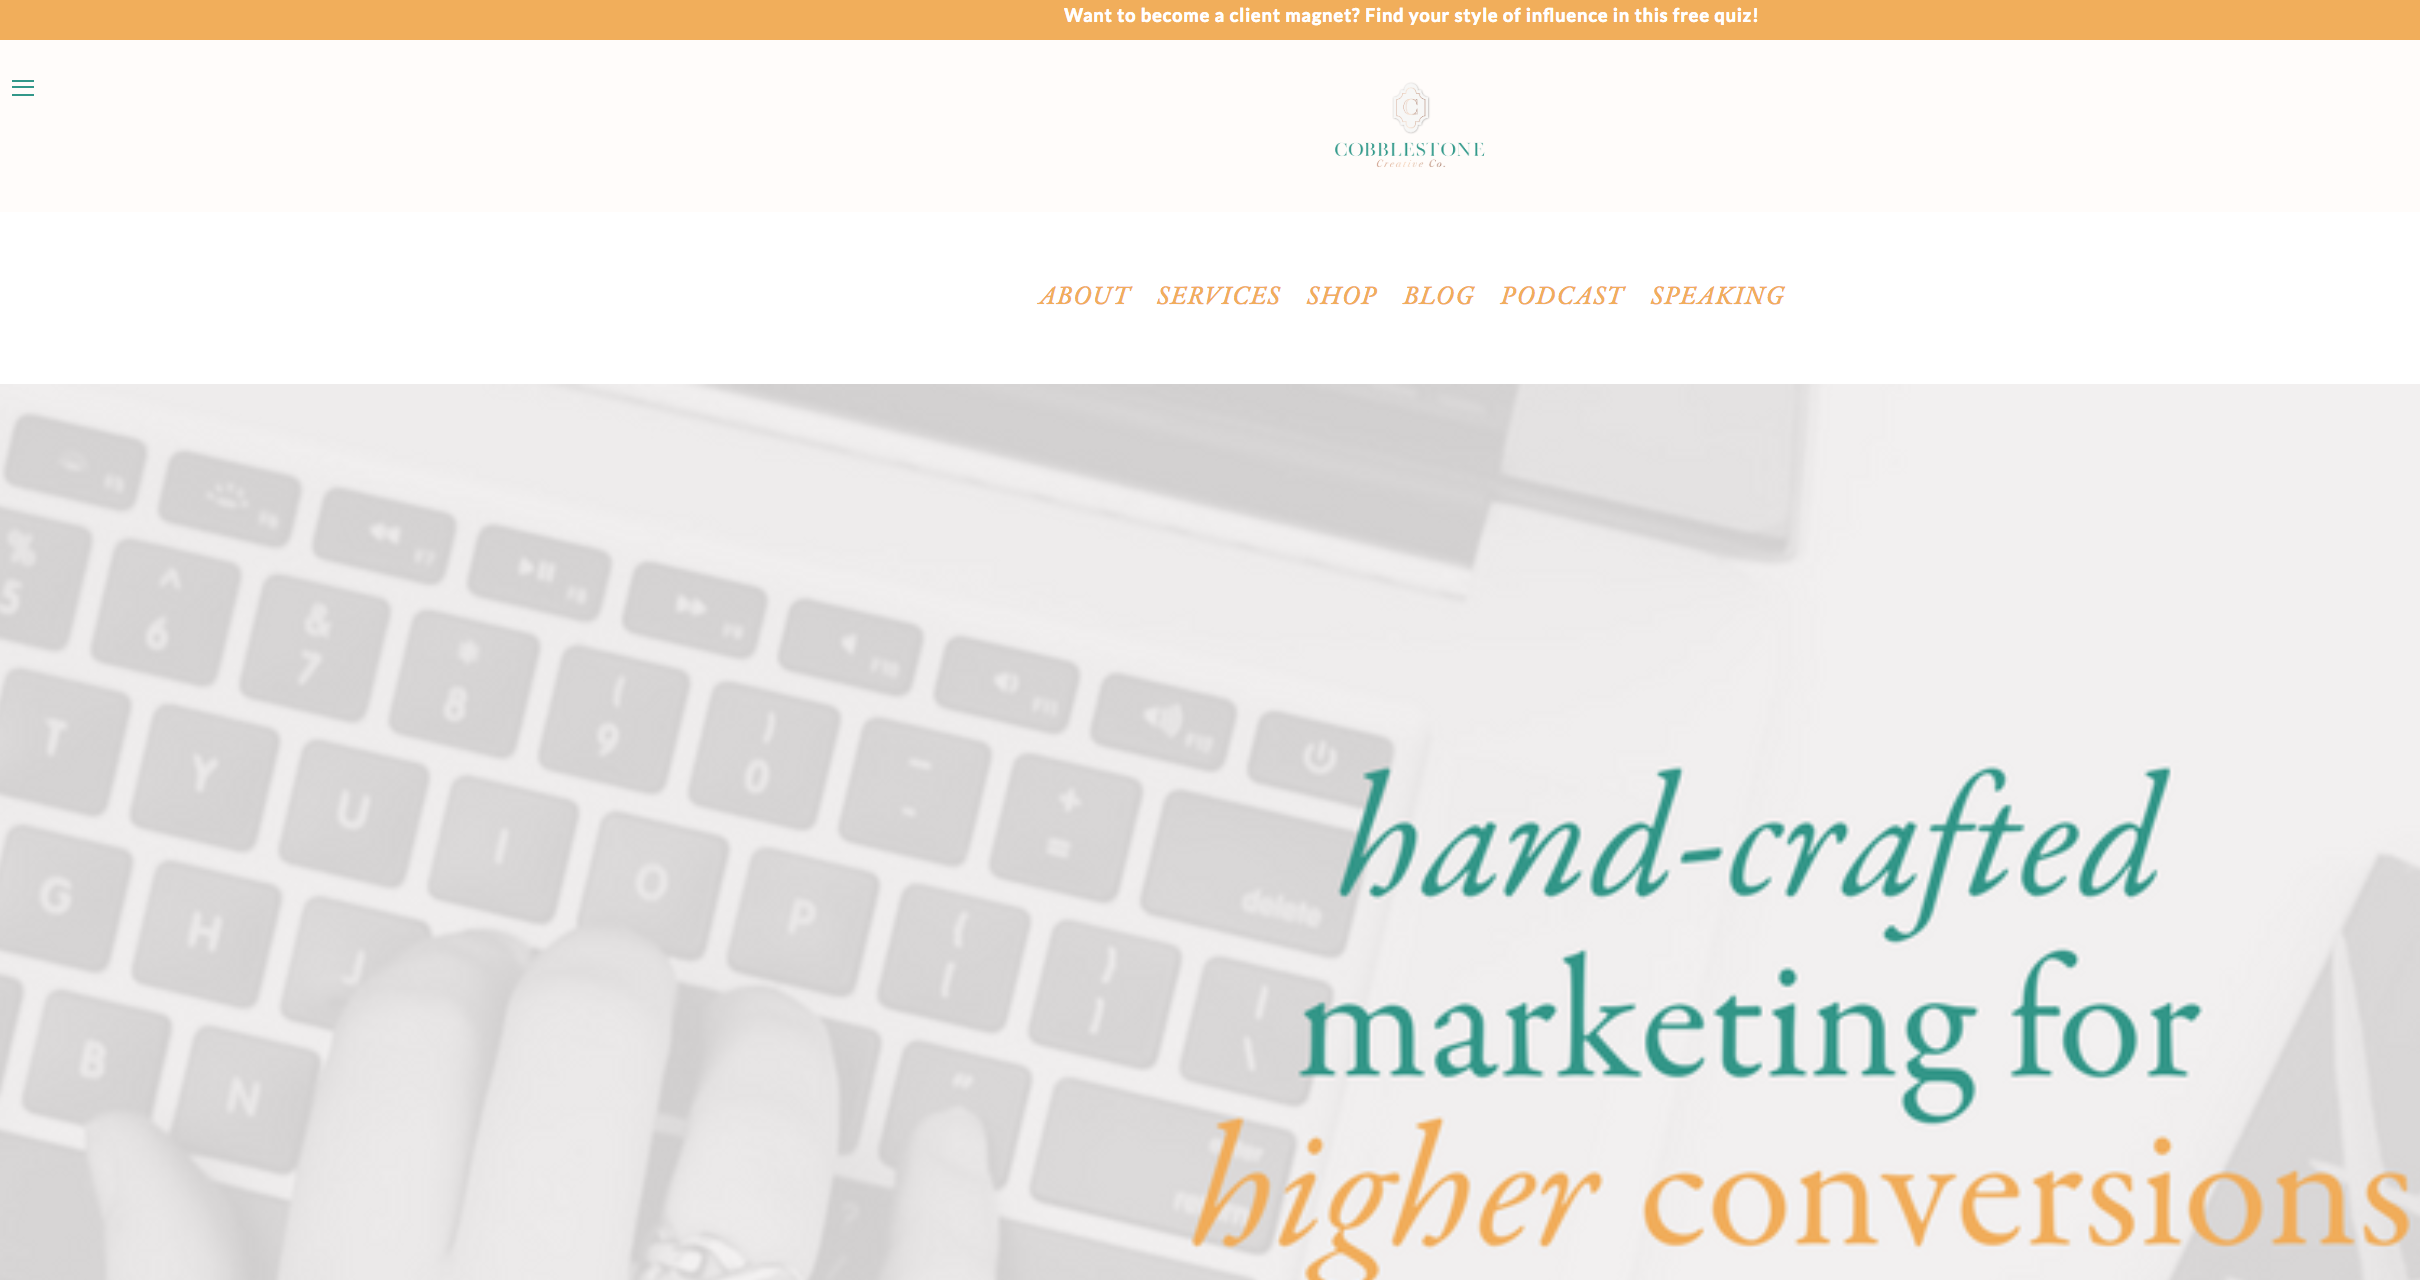 - Cobblestone Creative Co. launched in Sep. 2017 and needed to increase brand awareness, build an engaged audience, and attract clients.Through an organic digital marketing strategy, we increased website traffic by over 150% and increased mailing list contacts by 122%.In January 2018 we crafted an Instagram growth strategy that grew the Cobblestone Creative Co. audience by 148% and landed a $10,000 client.